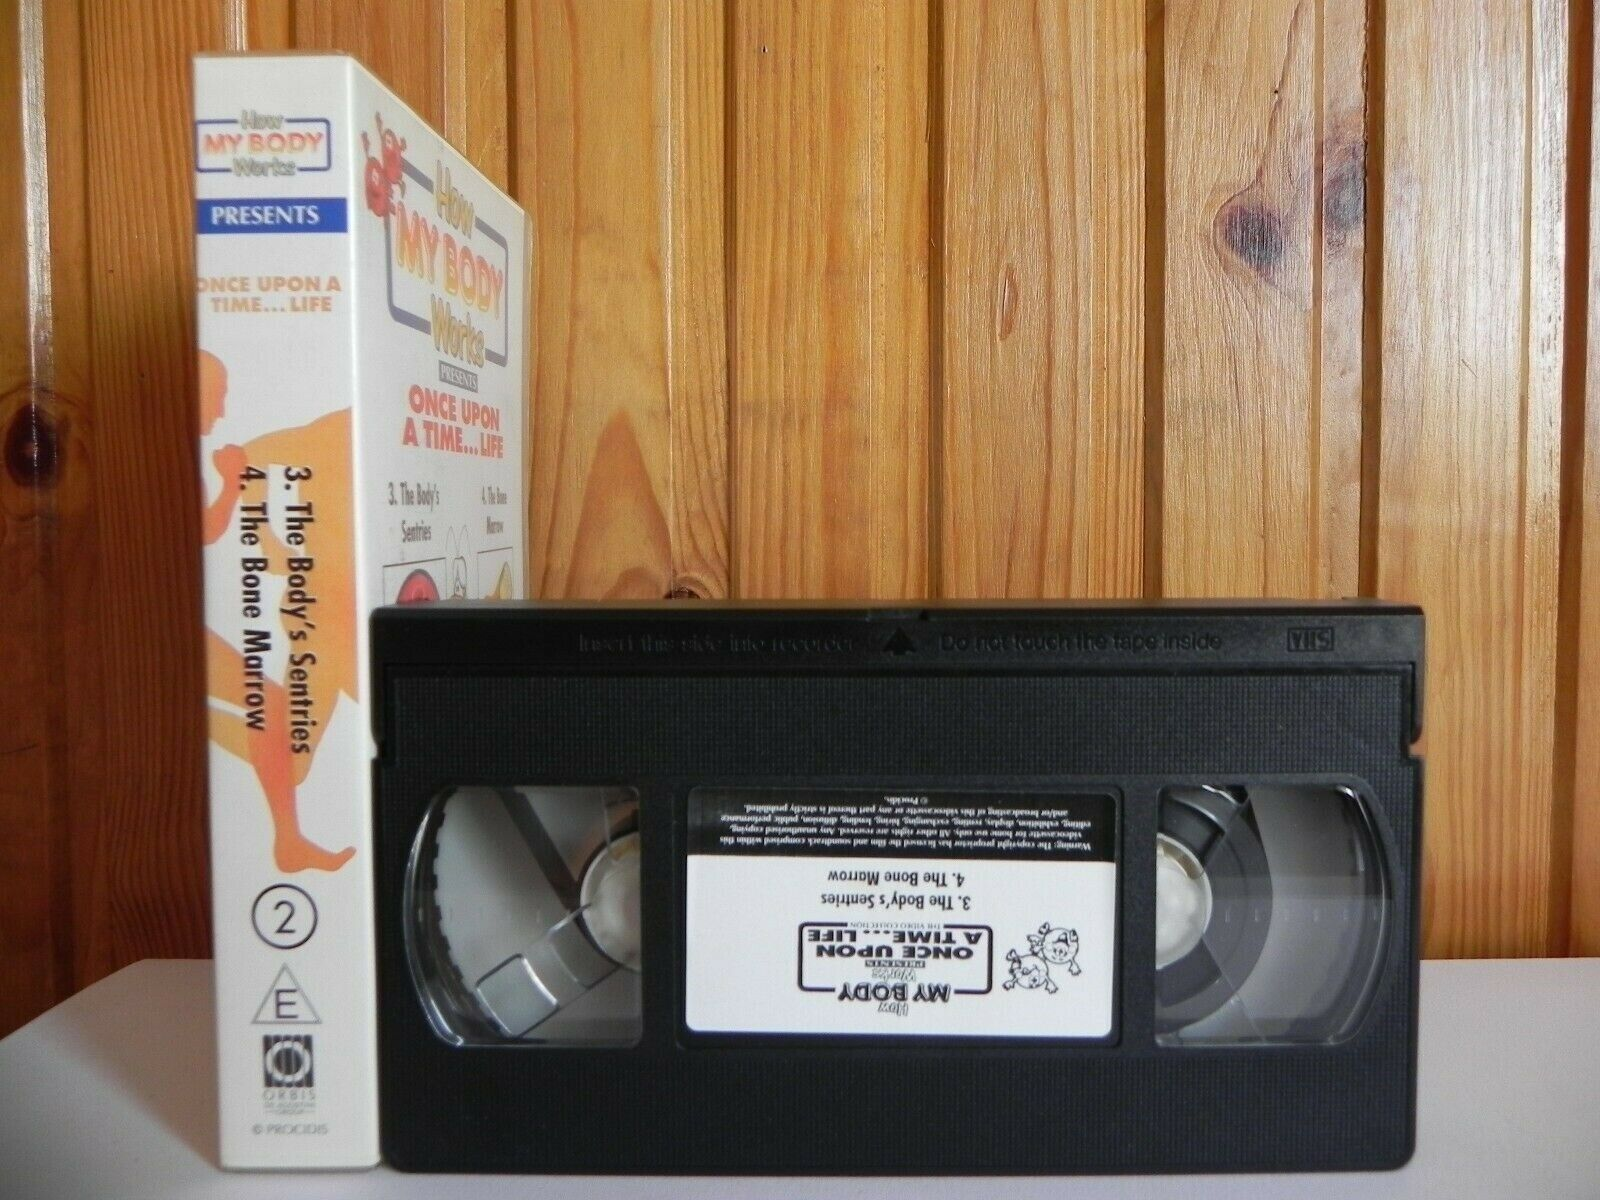 How My Body Works: Once Upon A Time...Life - Vol.2 - The Body's Sentries - VHS